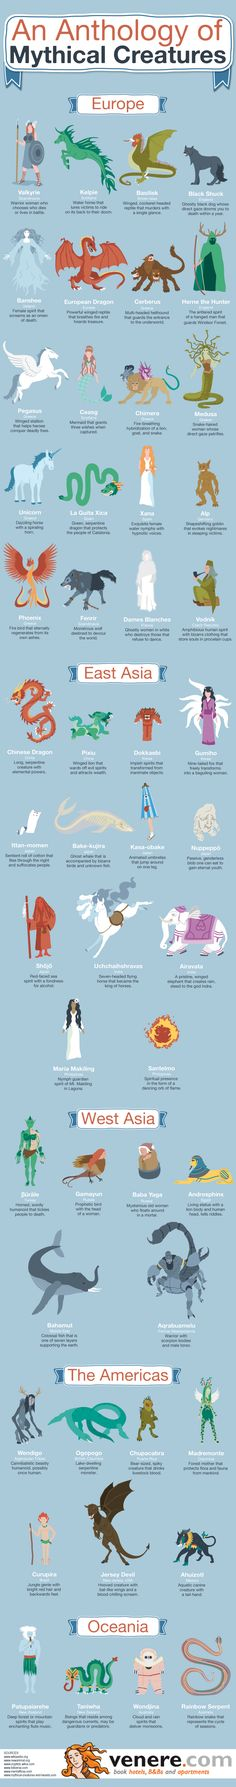 Here's a Handy Little Guide to the World's Mythical Creatures.  Surale and Dames Blancha are my favorites.